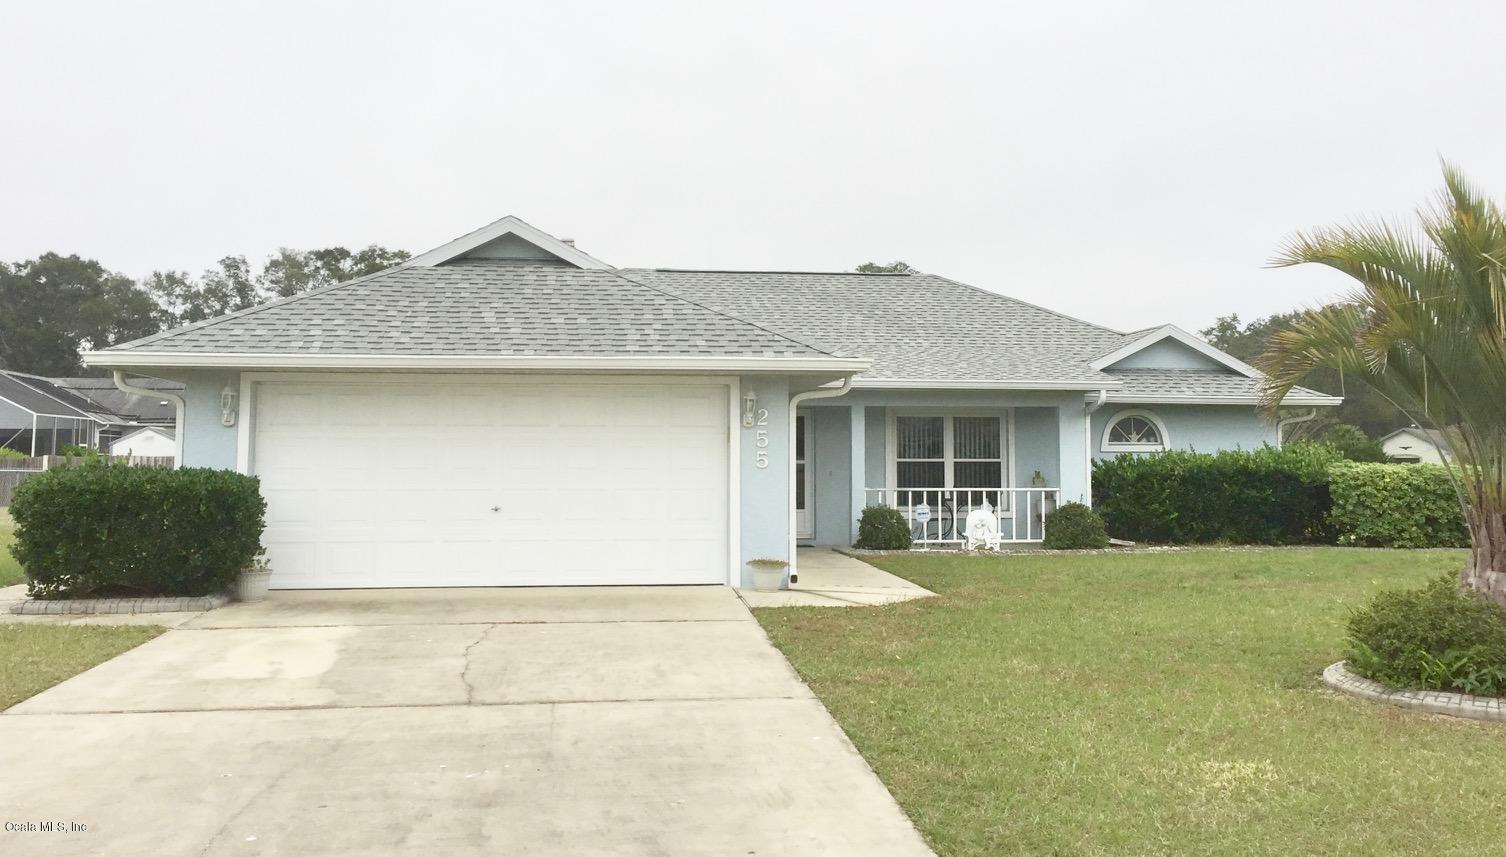 255 SE 62ND TERRACE, OCALA, FL 34472